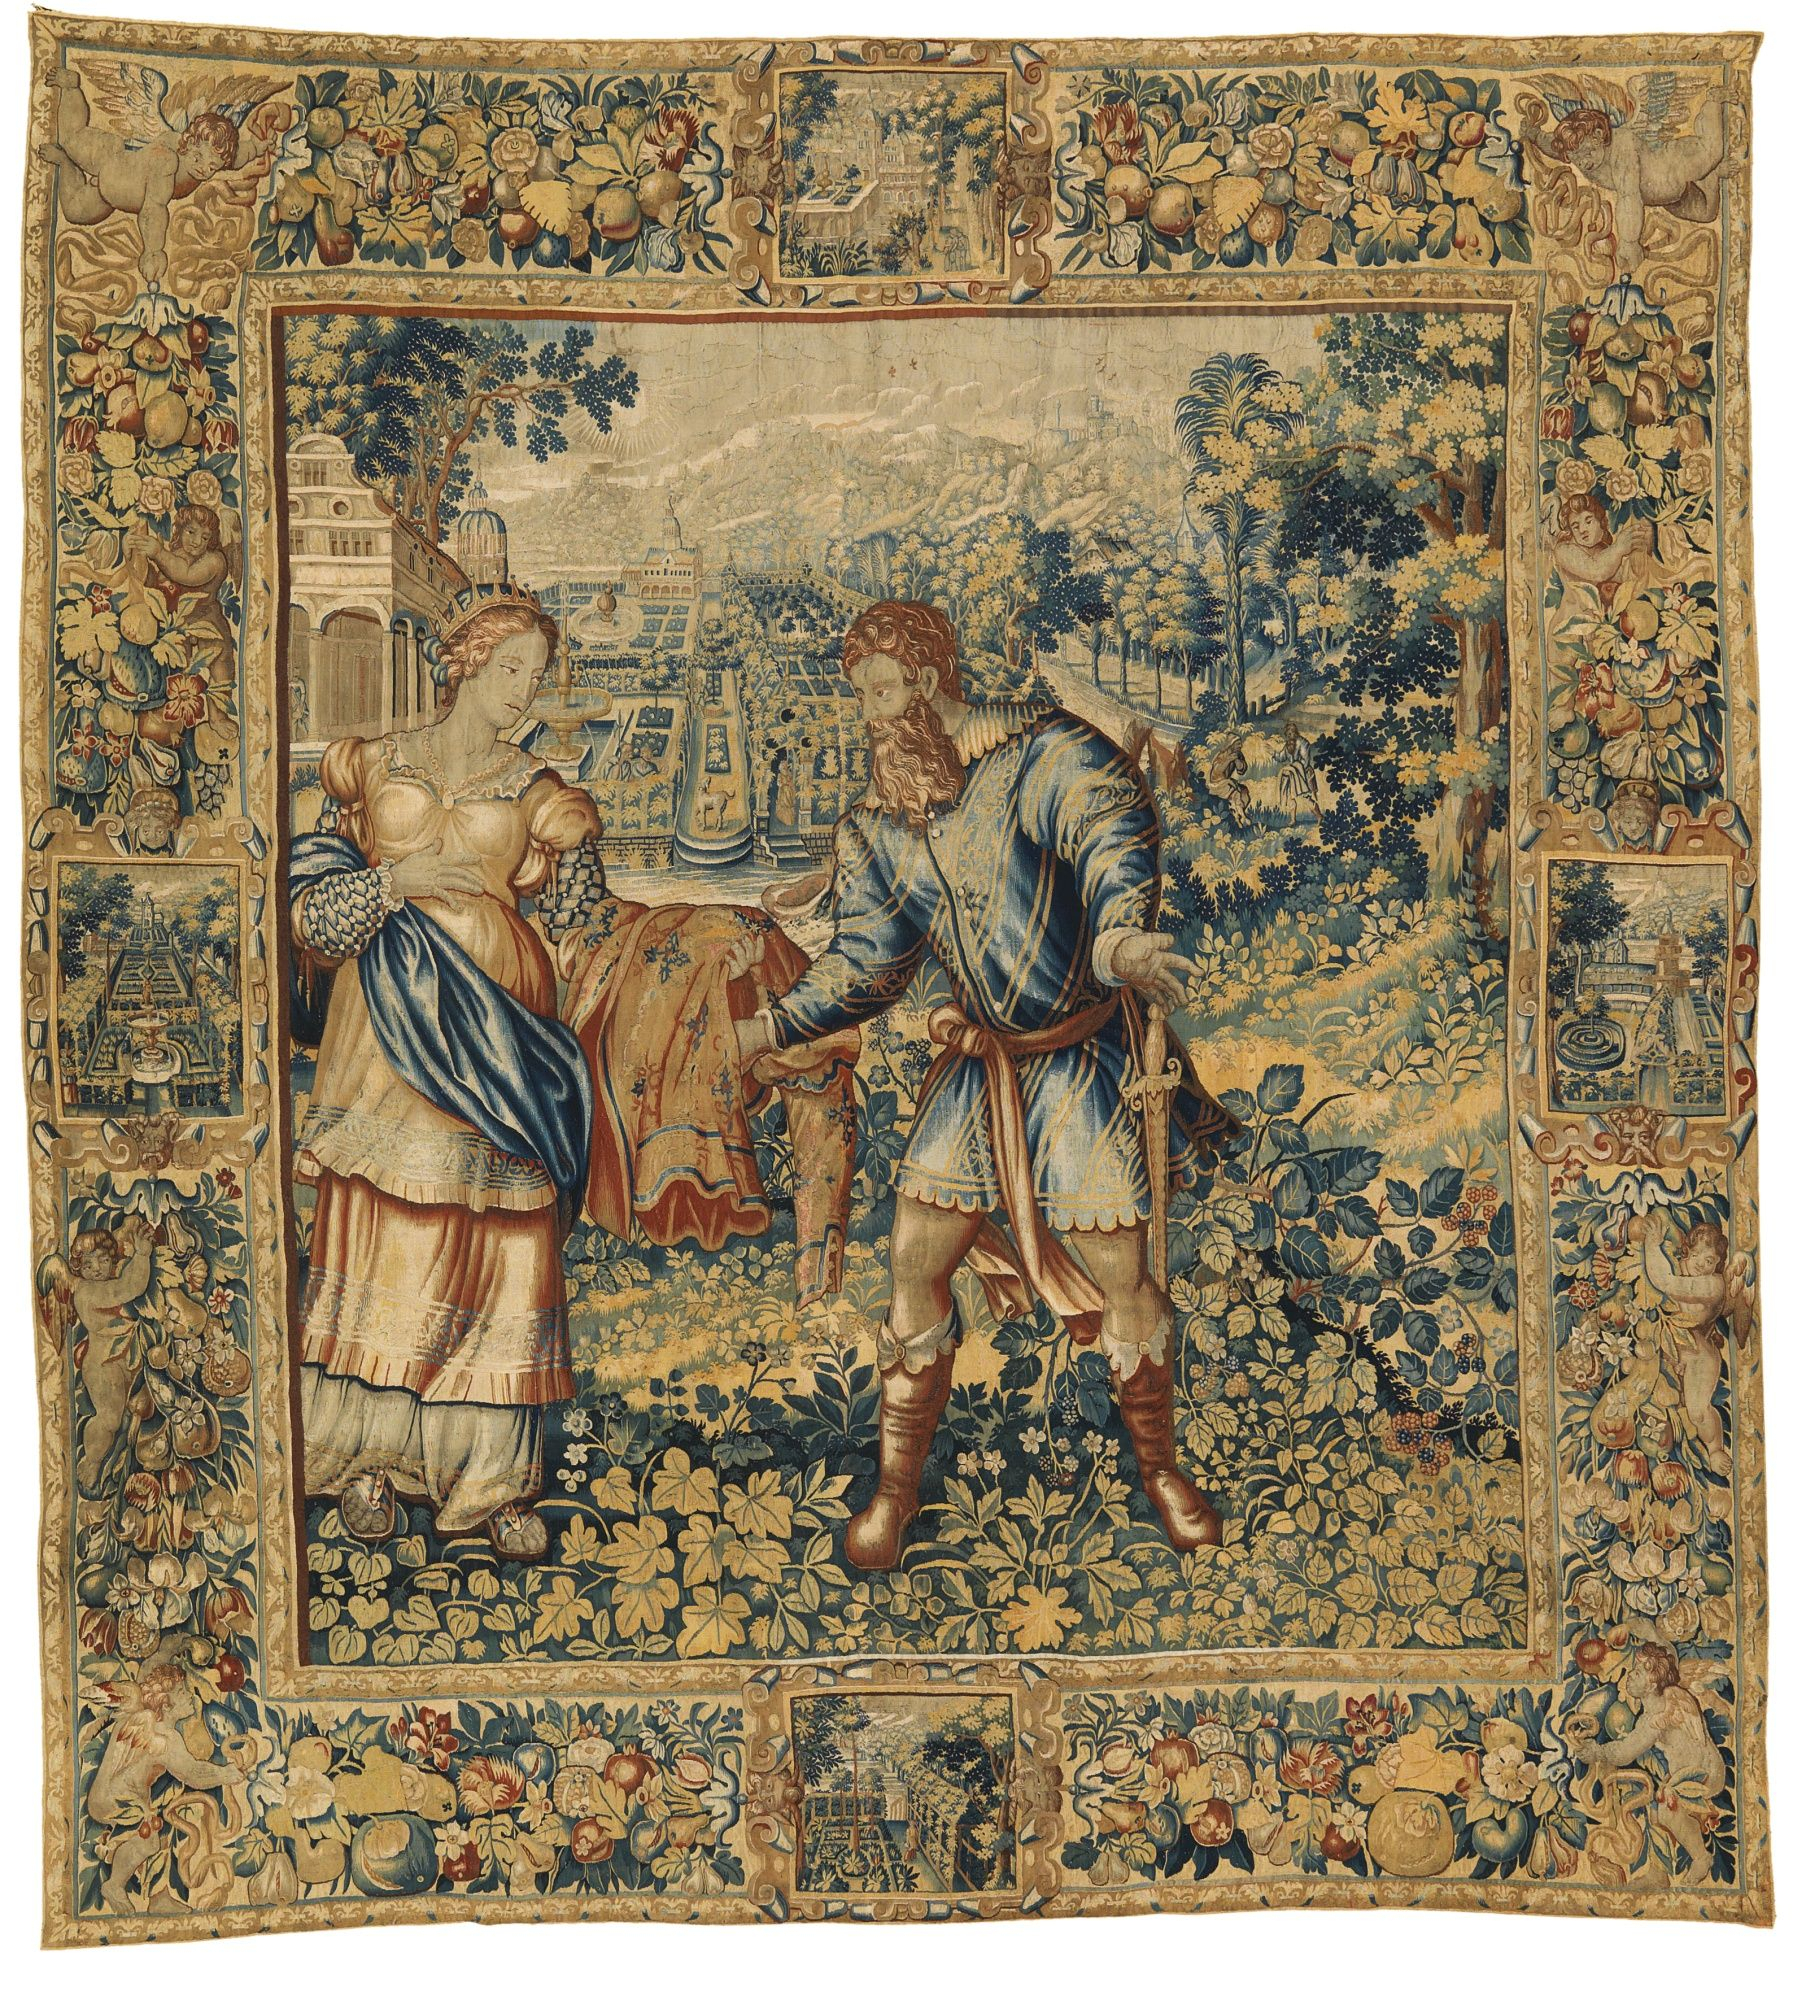 100+ Tapestry Ideas | Tapestry, Art, Medieval Tapestry Inside Most Current Blended Fabric Verdure Au Chateau Ii European Tapestries (View 6 of 20)